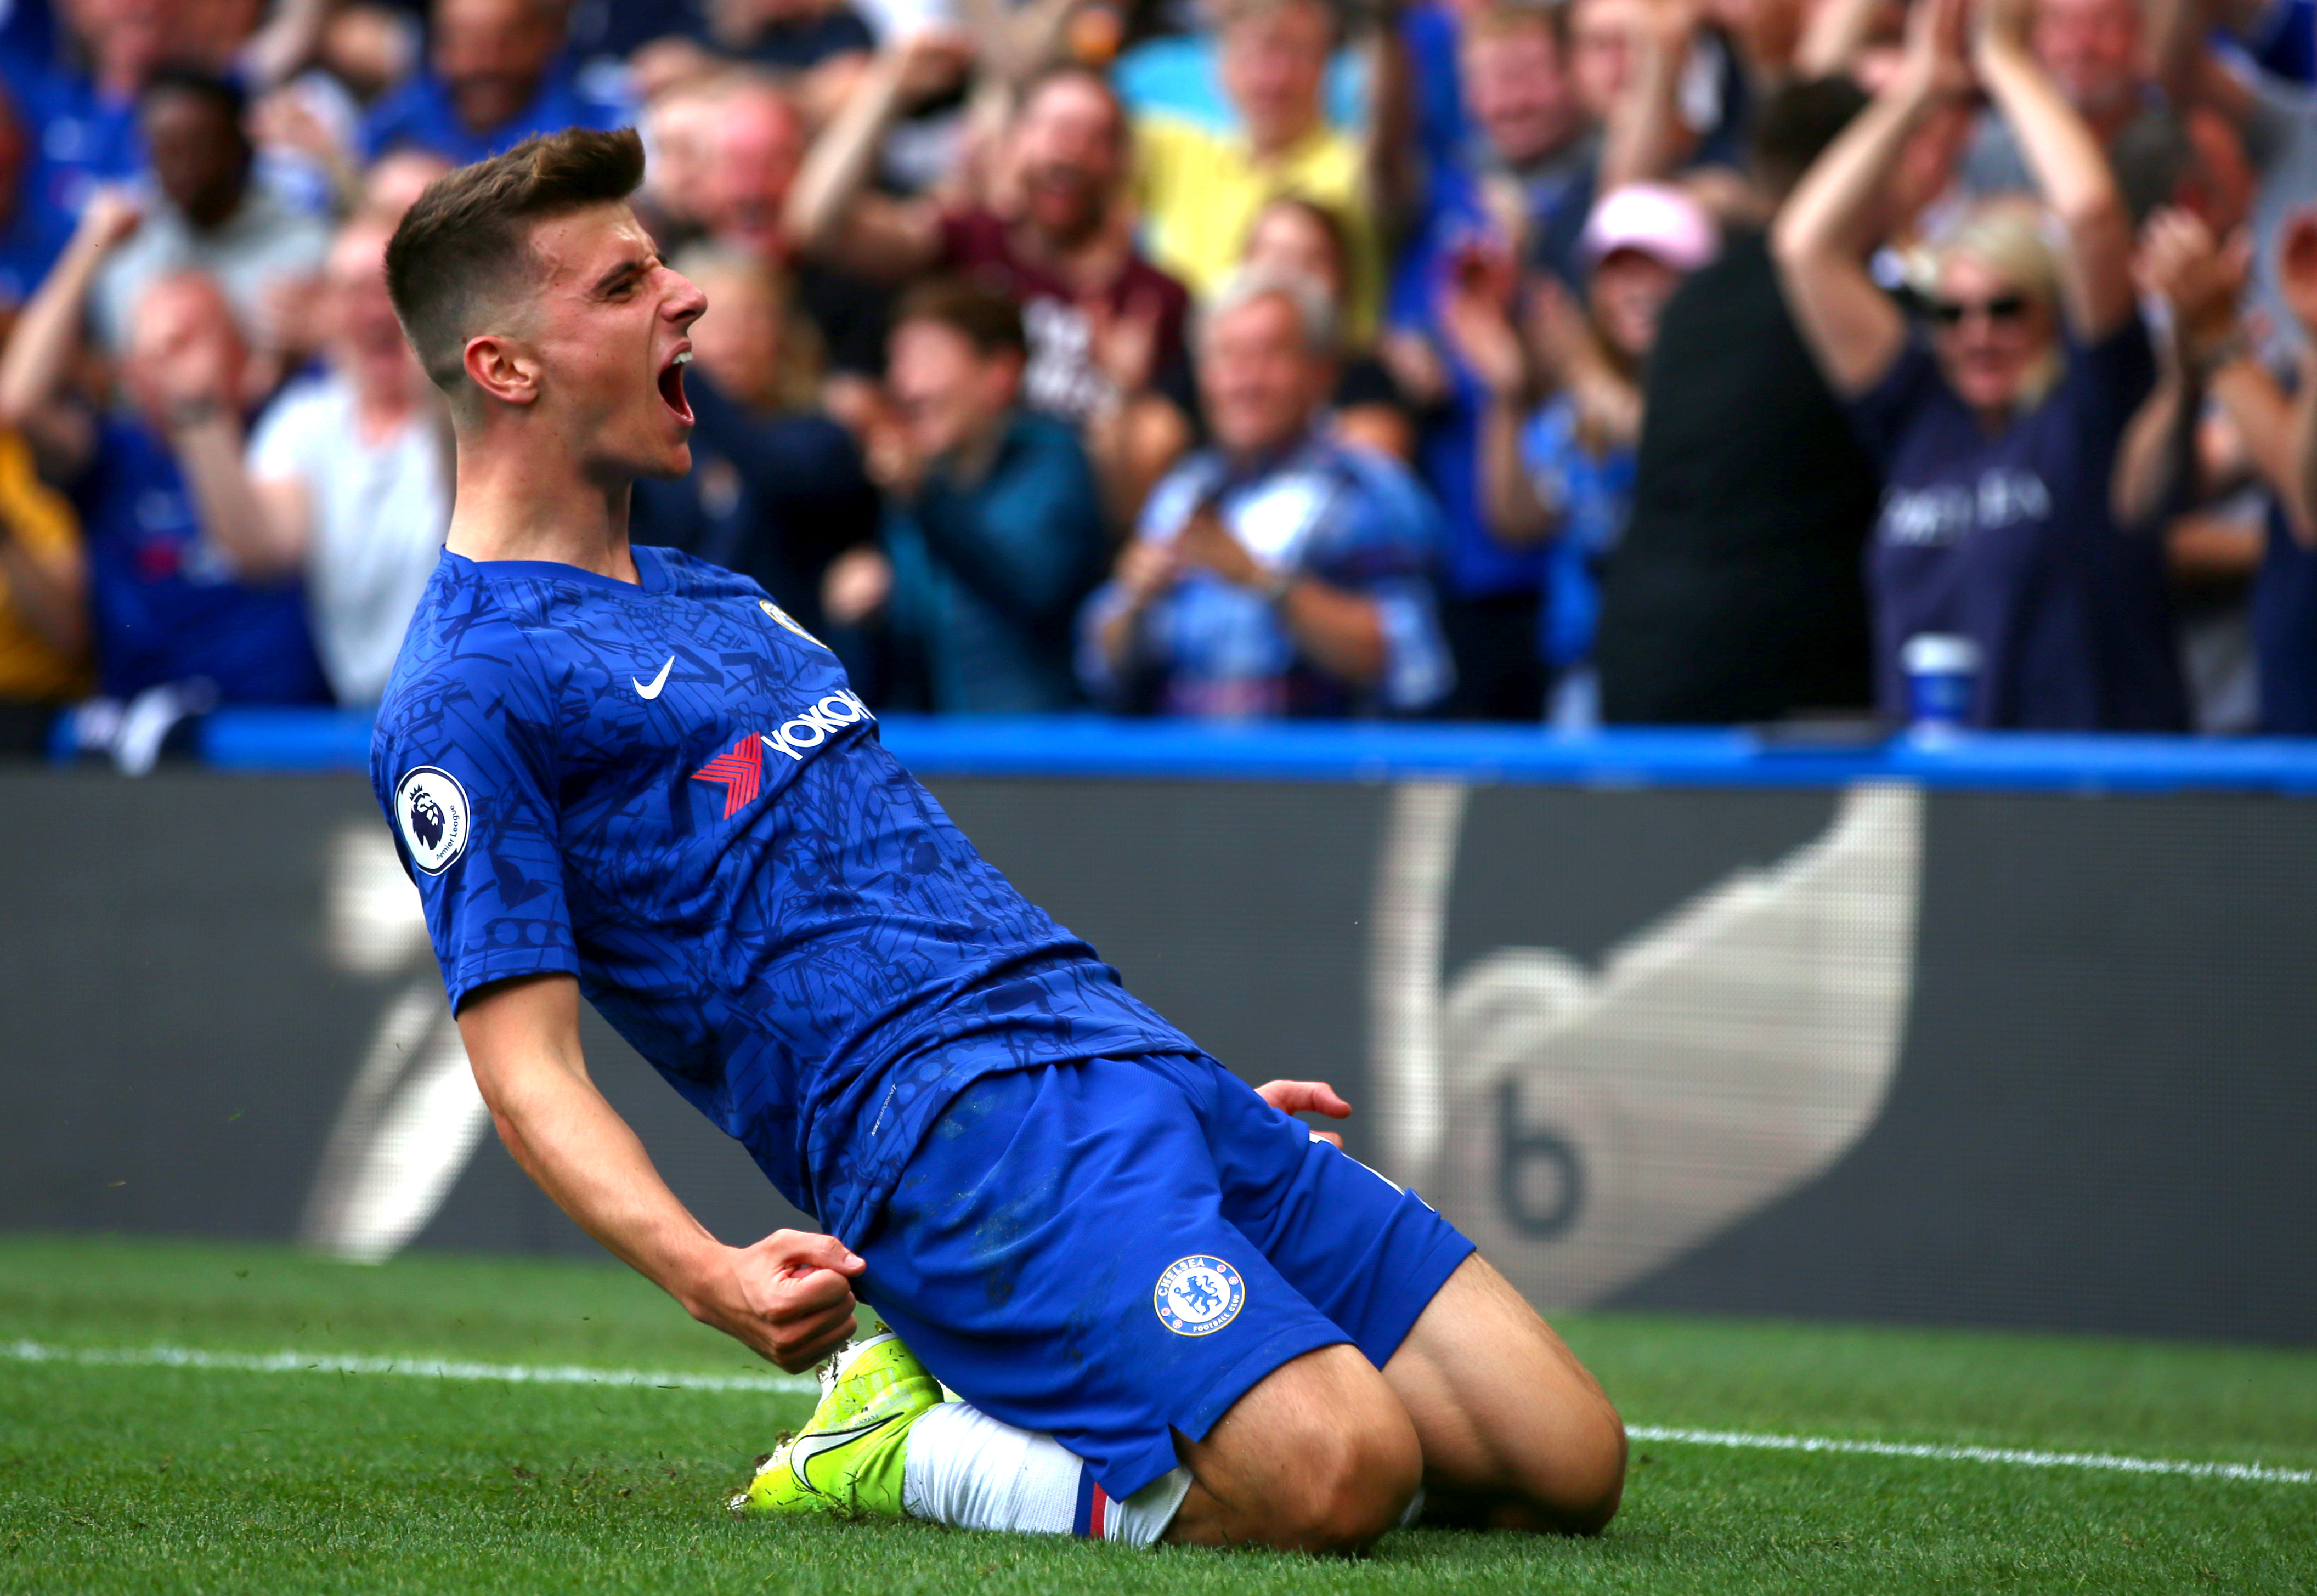 Mount delighted with first Chelsea goal, less delighted with no first Chelsea win